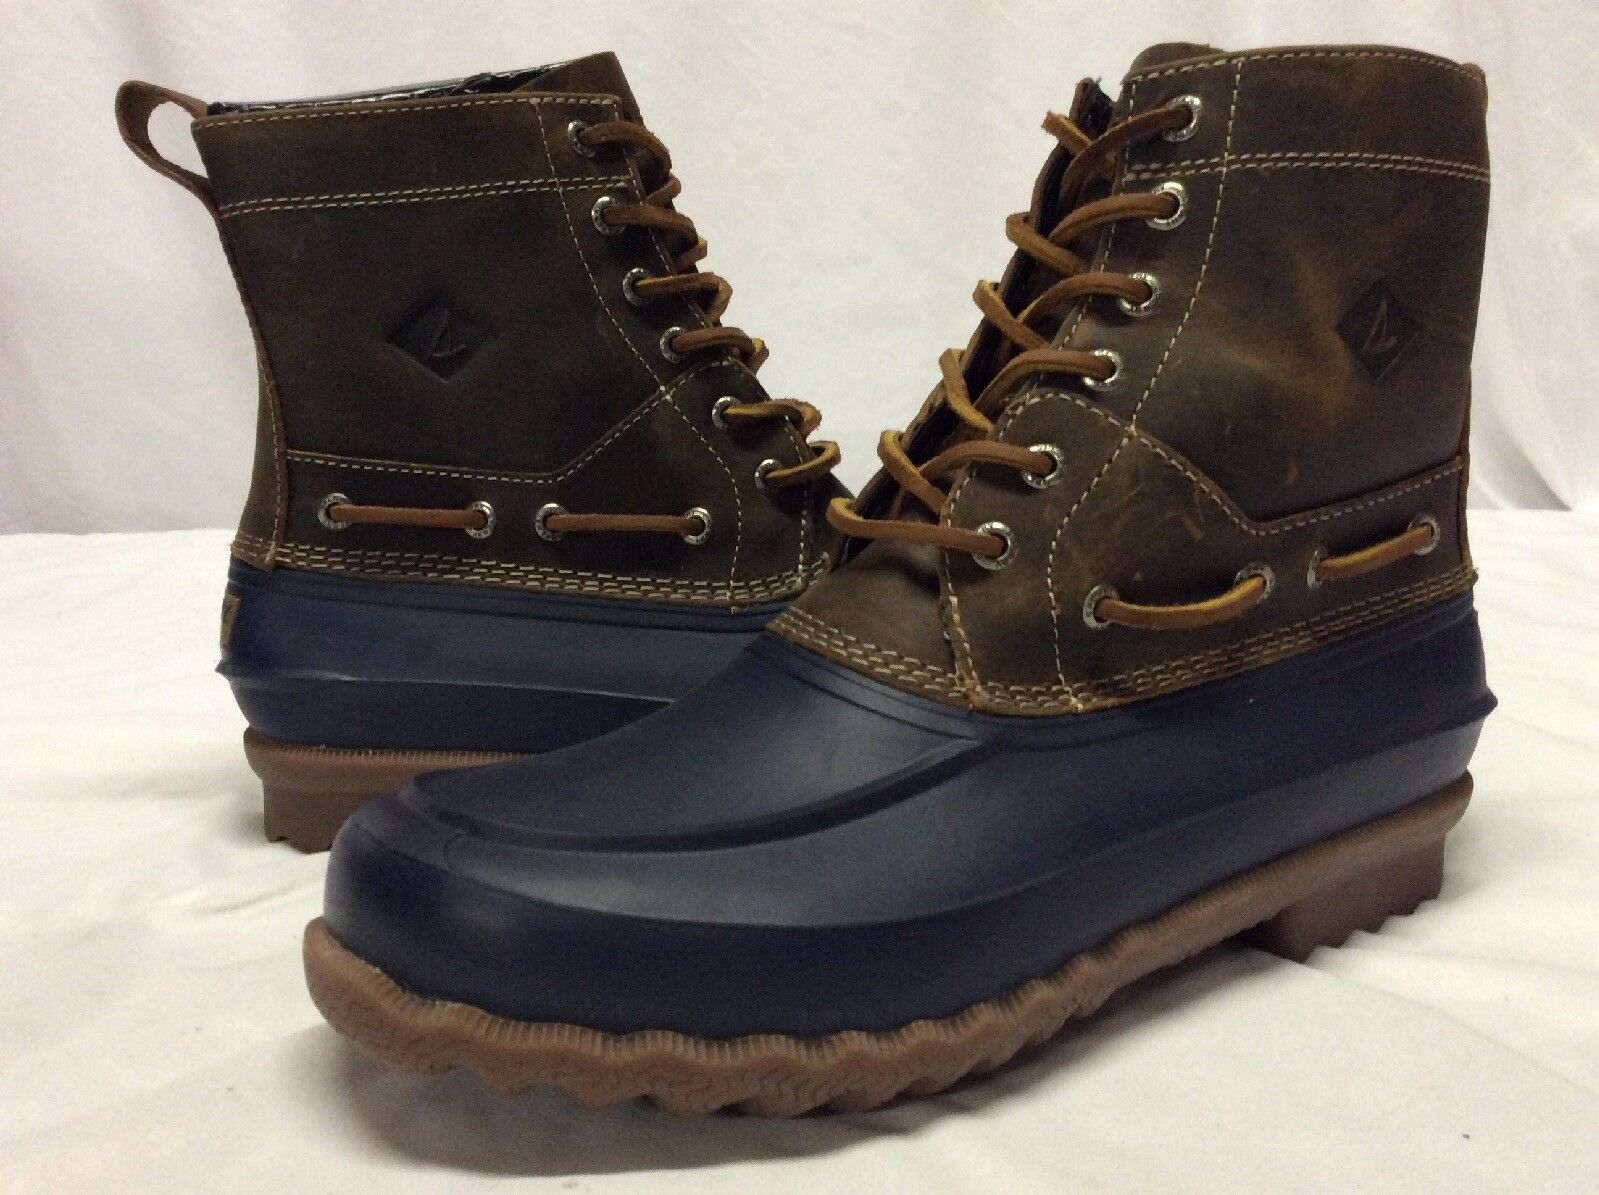 Sperry Top Sider  Saltwater WP Boots Men's, Navy Tan, Size 9, Eur 42